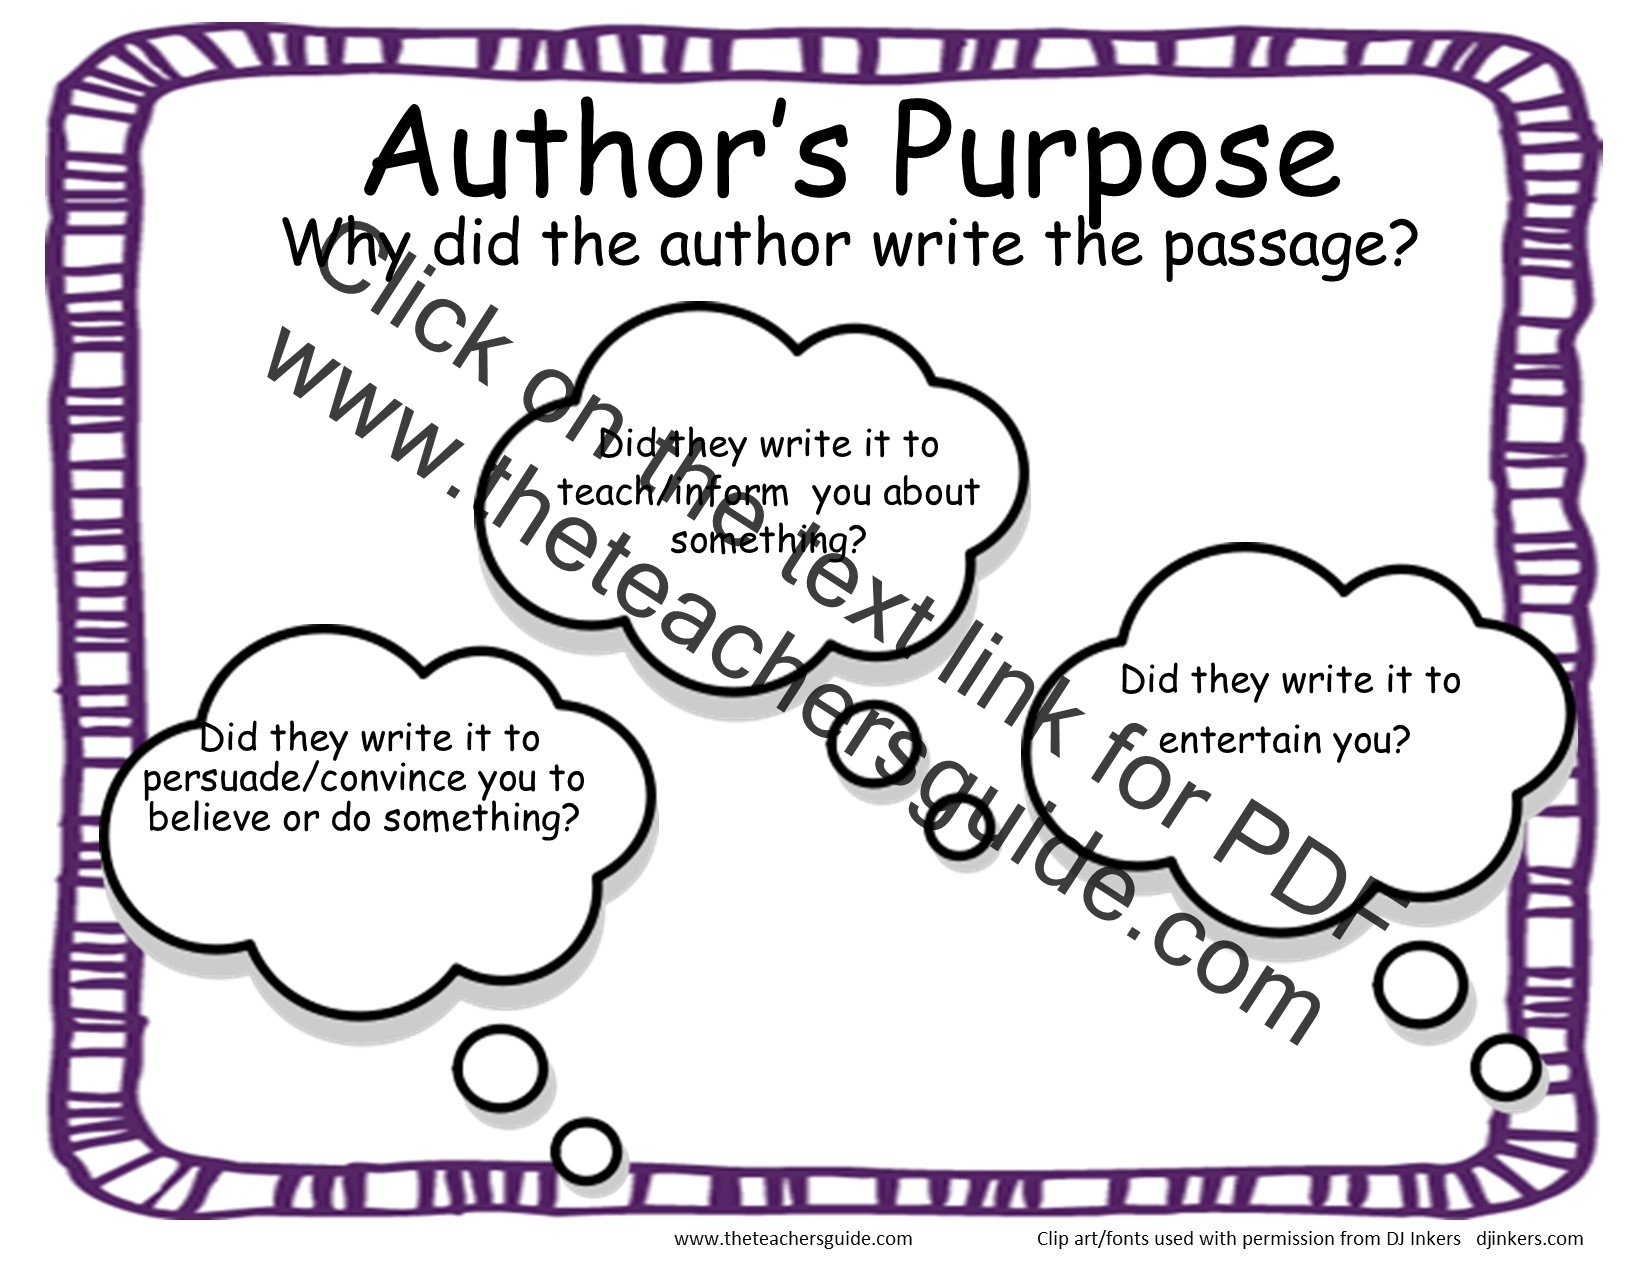 author purpose book report Foreword -- the purpose of a foreword is to introduce the reader to the author as well as the book itself, and to help establish credibility for both a foreword may not contribute any additional information about the book's subject matter, but it serves as a means of validating the book's existence.